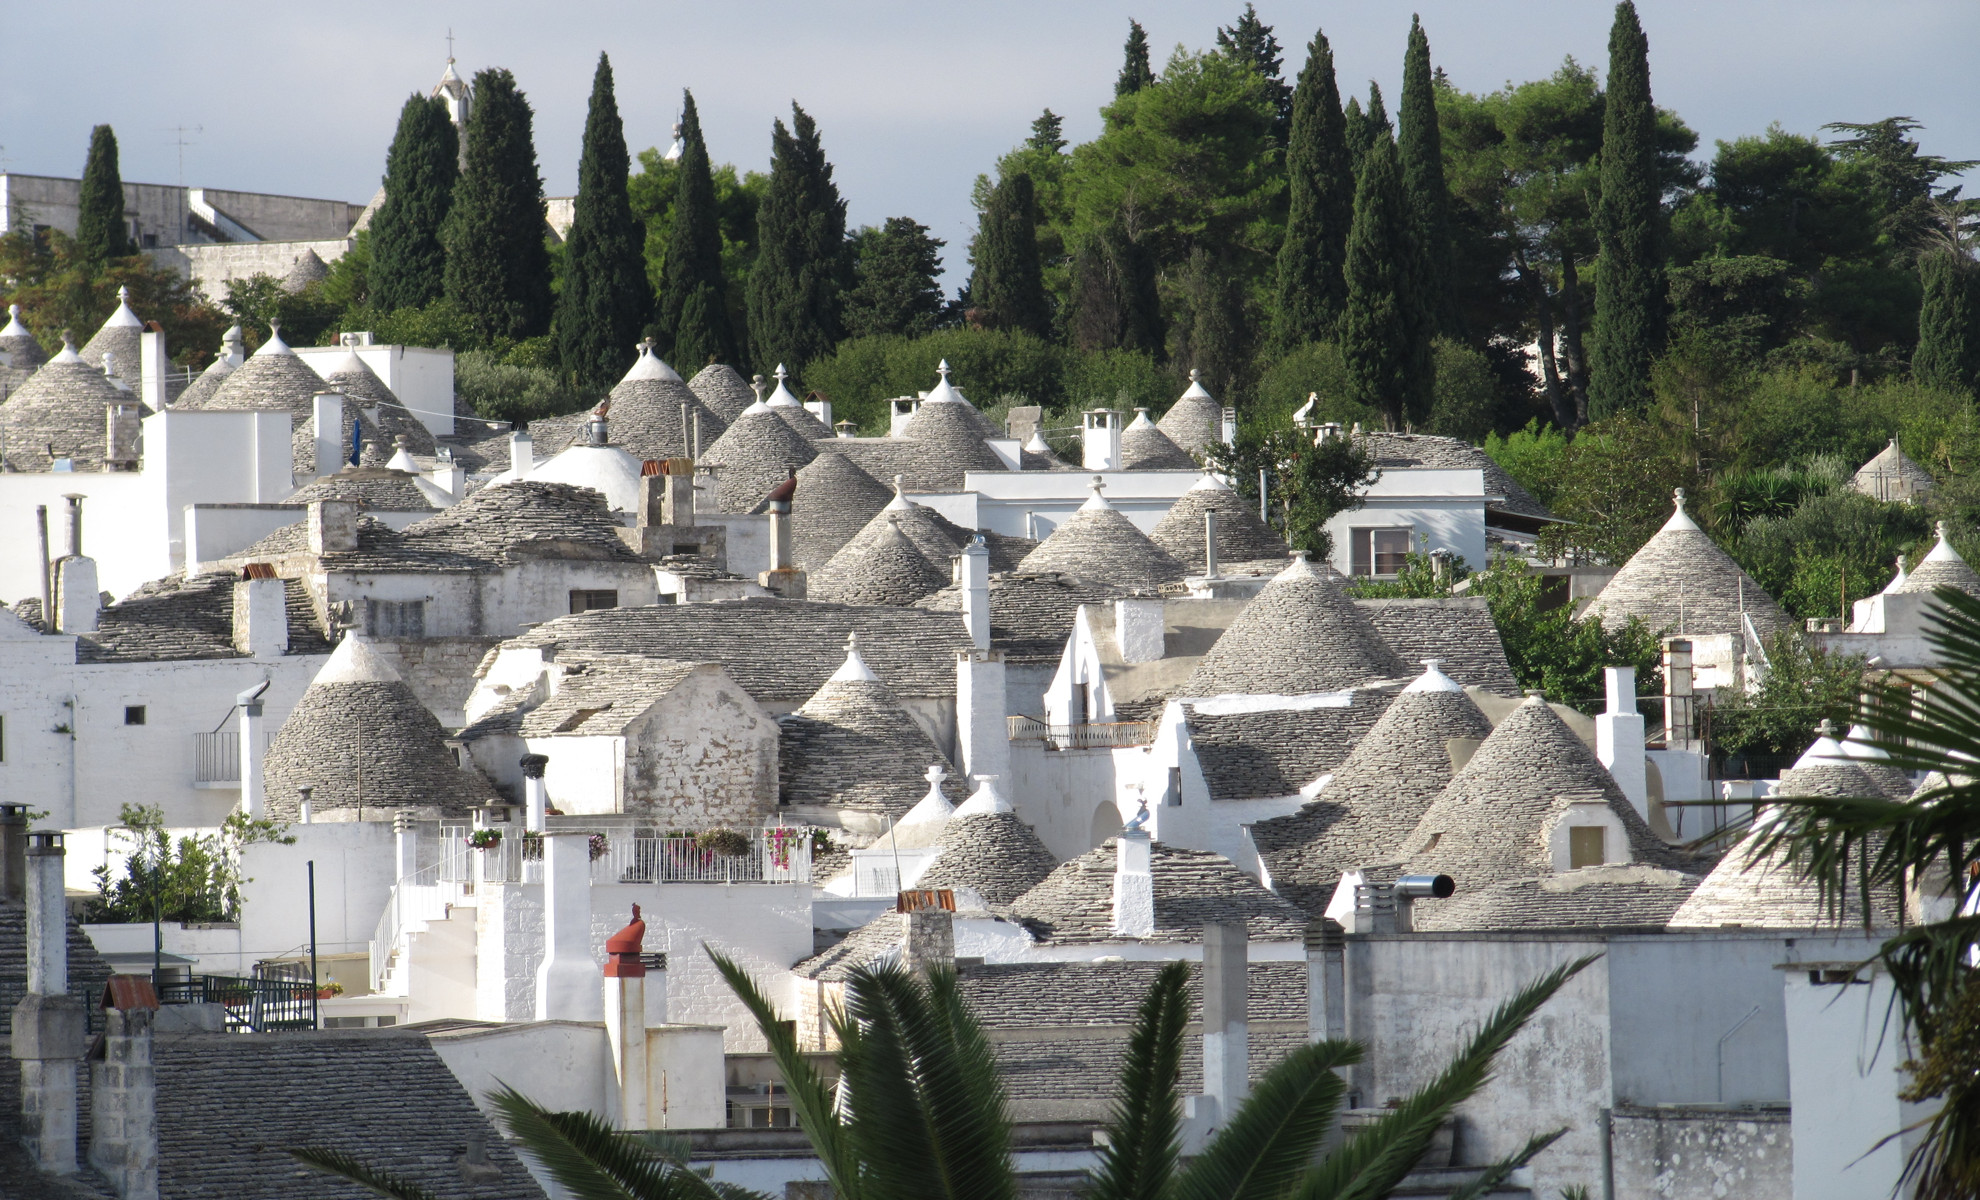 Picturesque Alberobello Italy The Backpackers